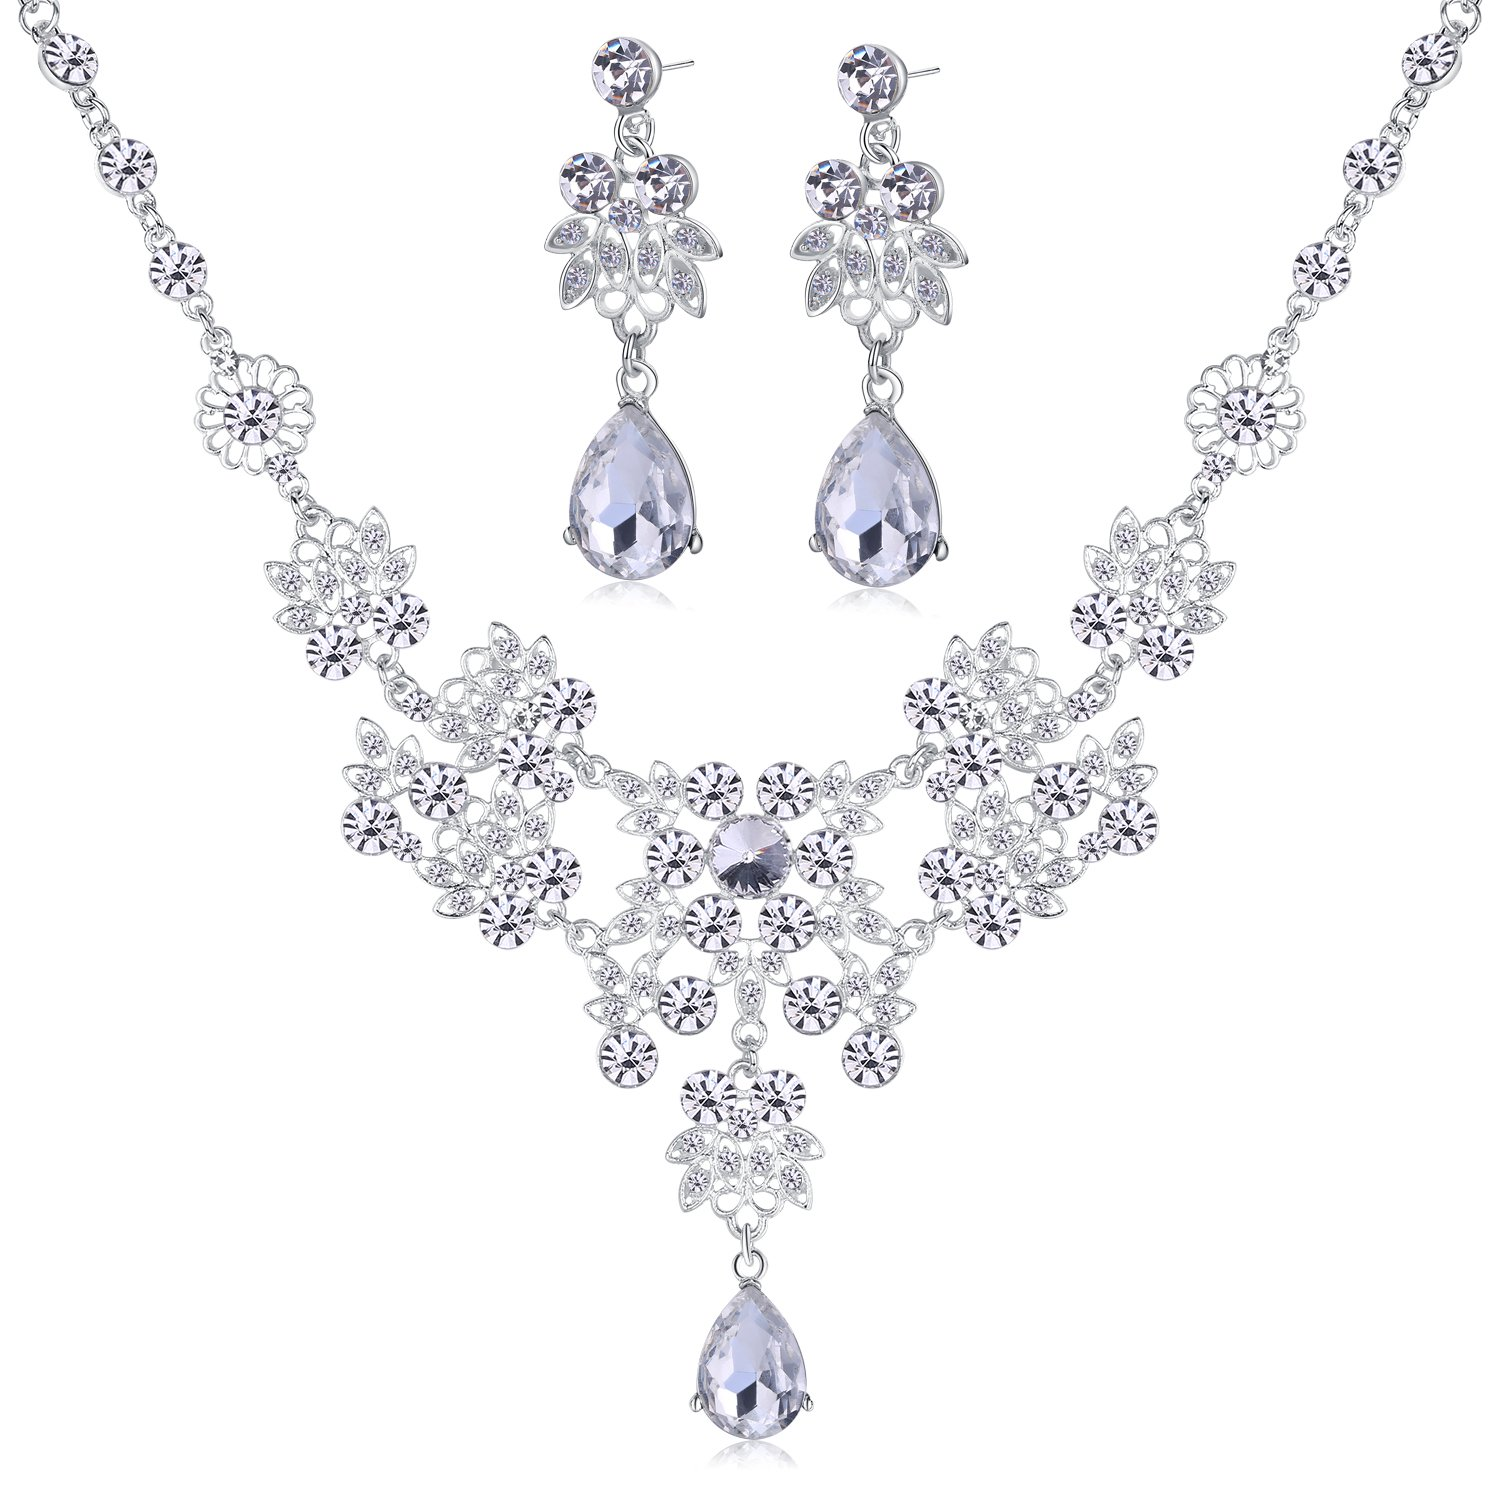 luxury wedding rhinestone party accessories set item crystal necklace earrings in bridal sets india women from jewelry style